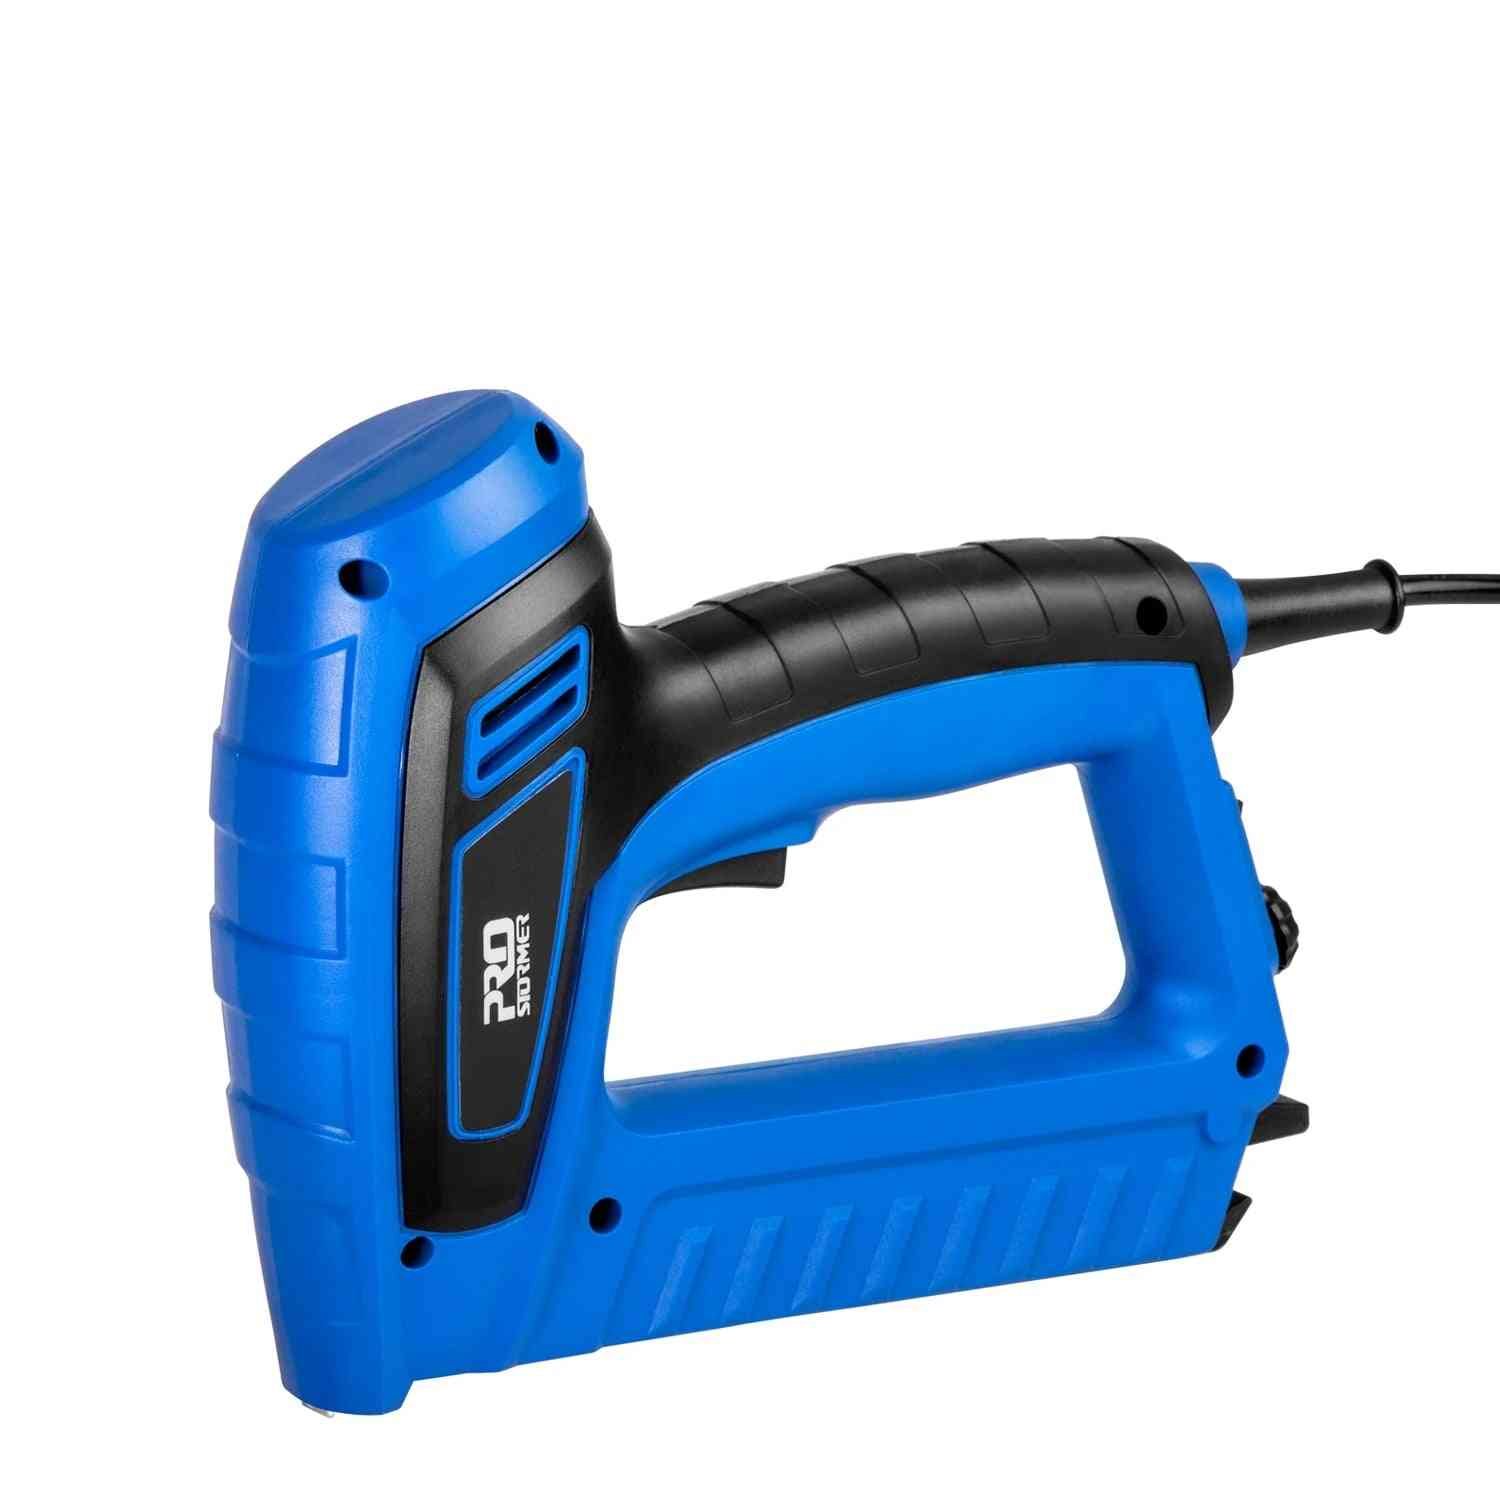 Electric Staple Gun, Power Adjustable Nail Furniture Woodworking Upholstery Tools